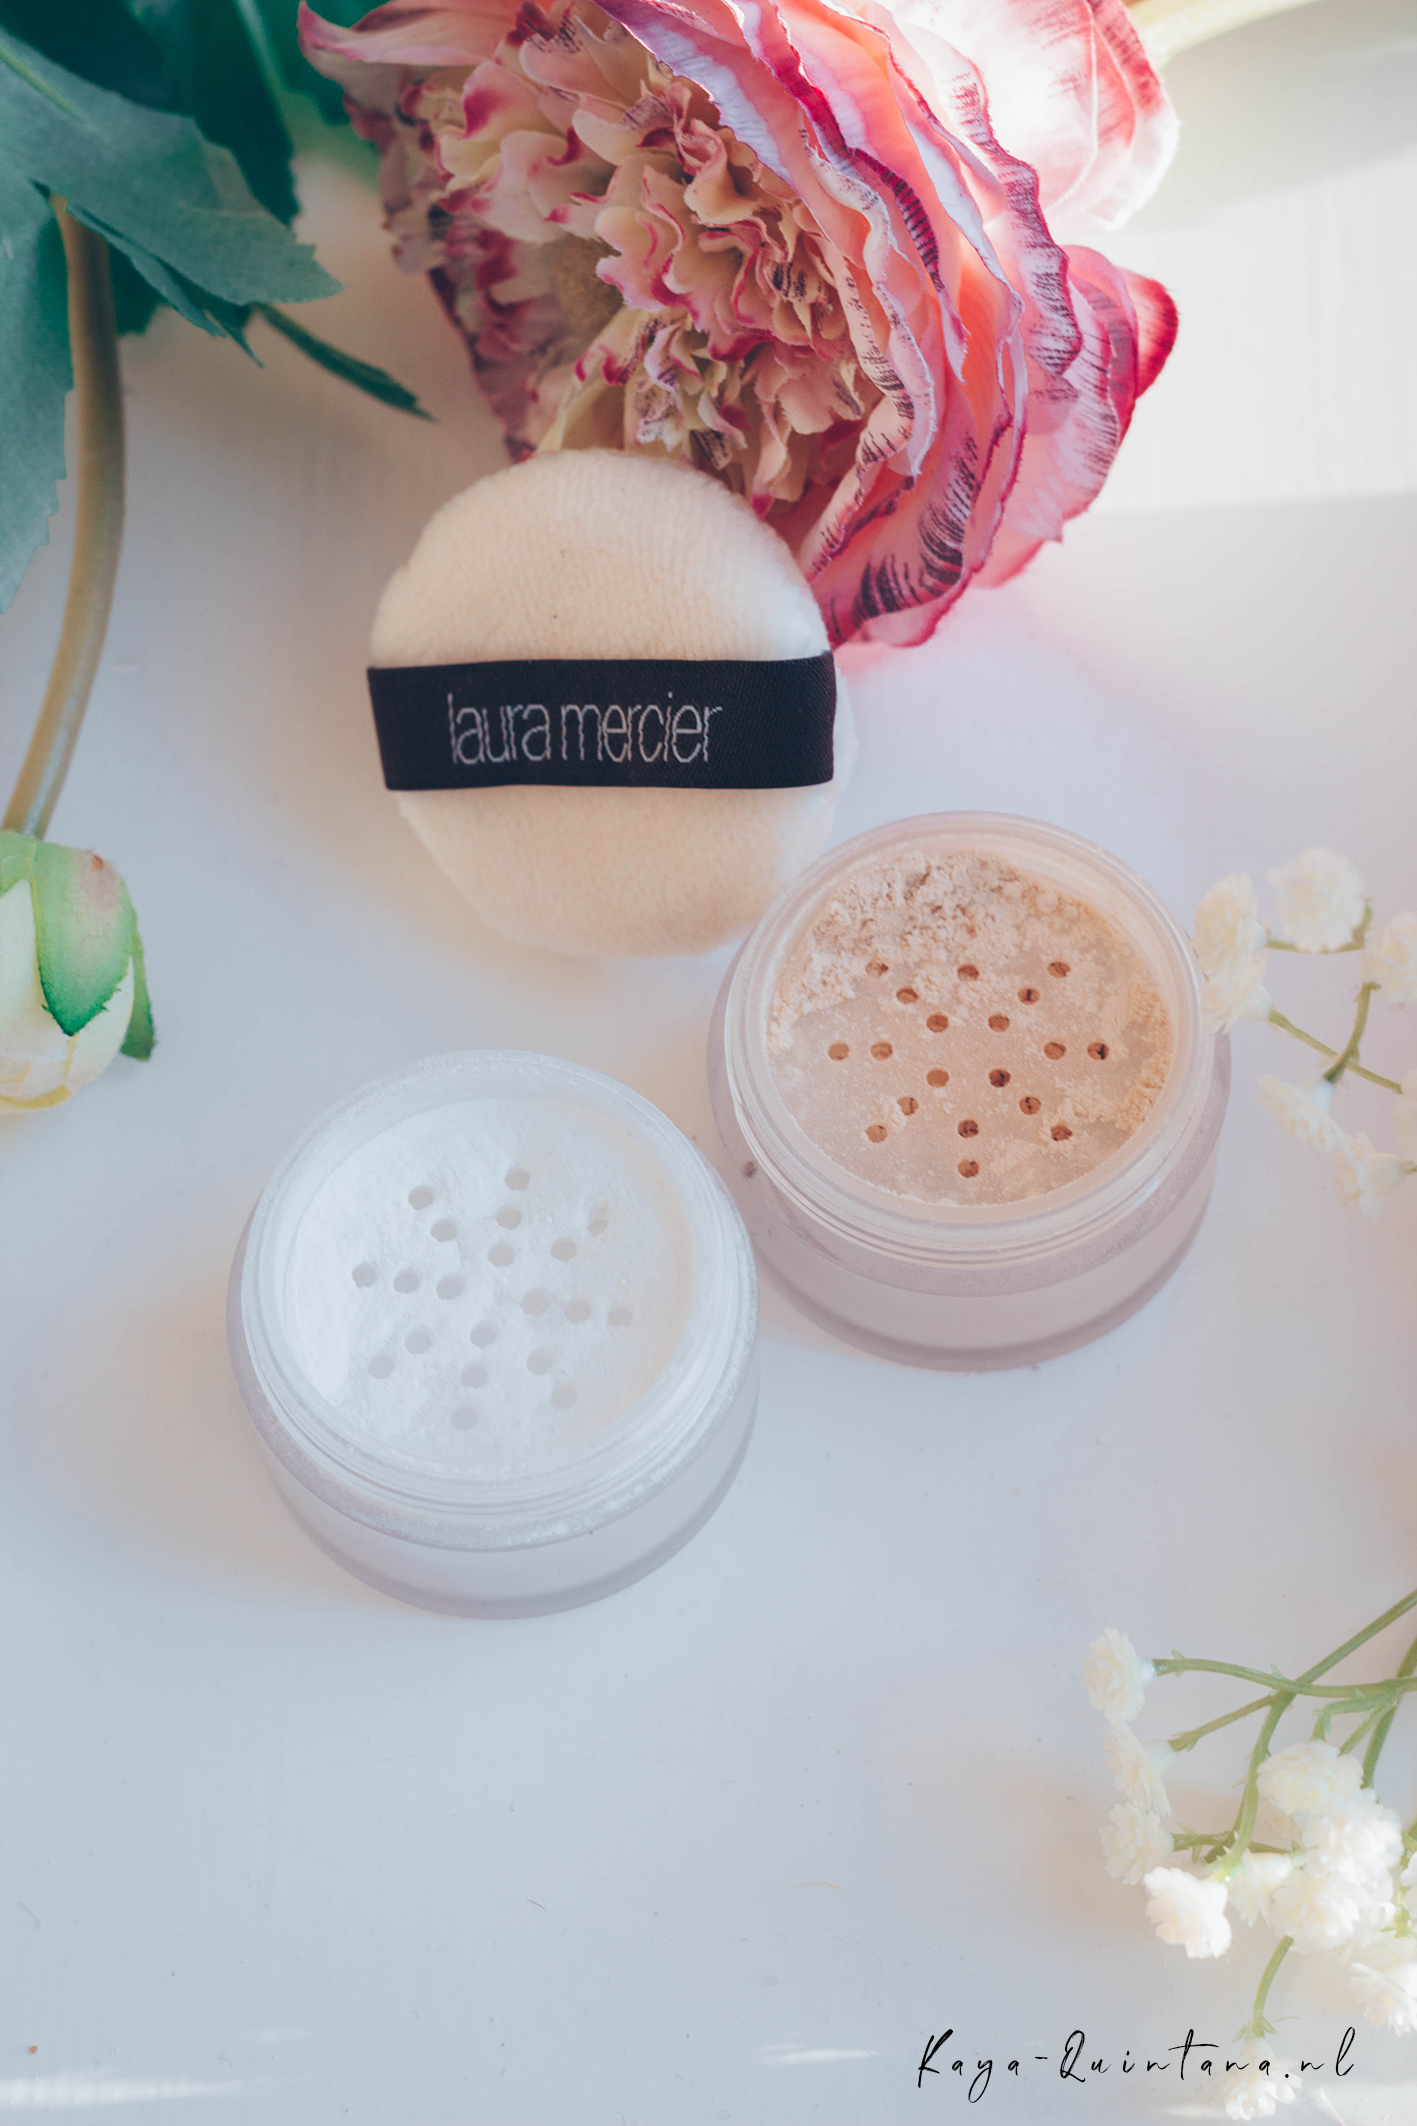 Laura Mercier Translucent loose setting powder review